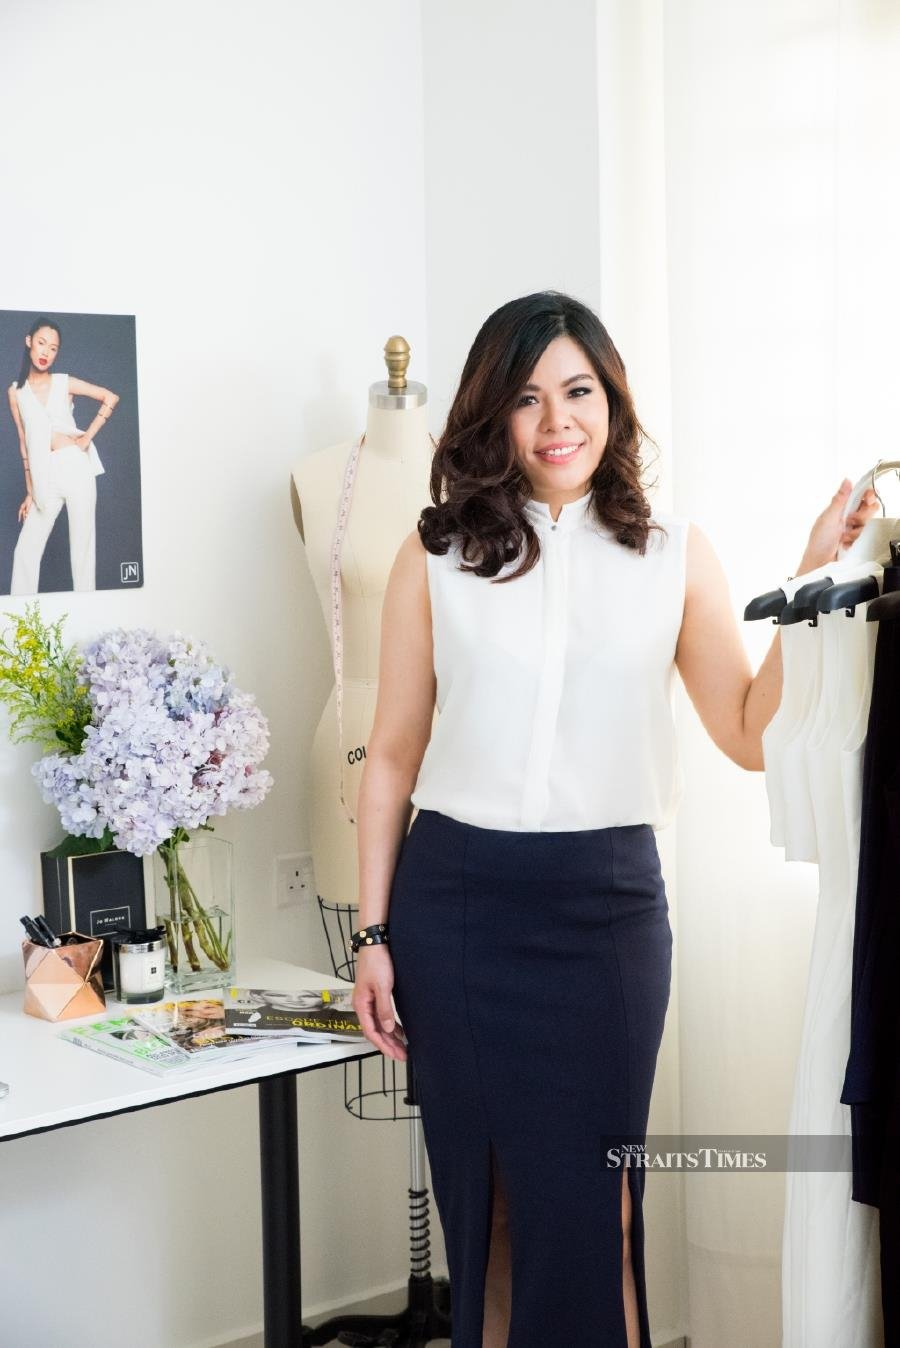 From Software Engineer To Fashion Designer New Straits Times